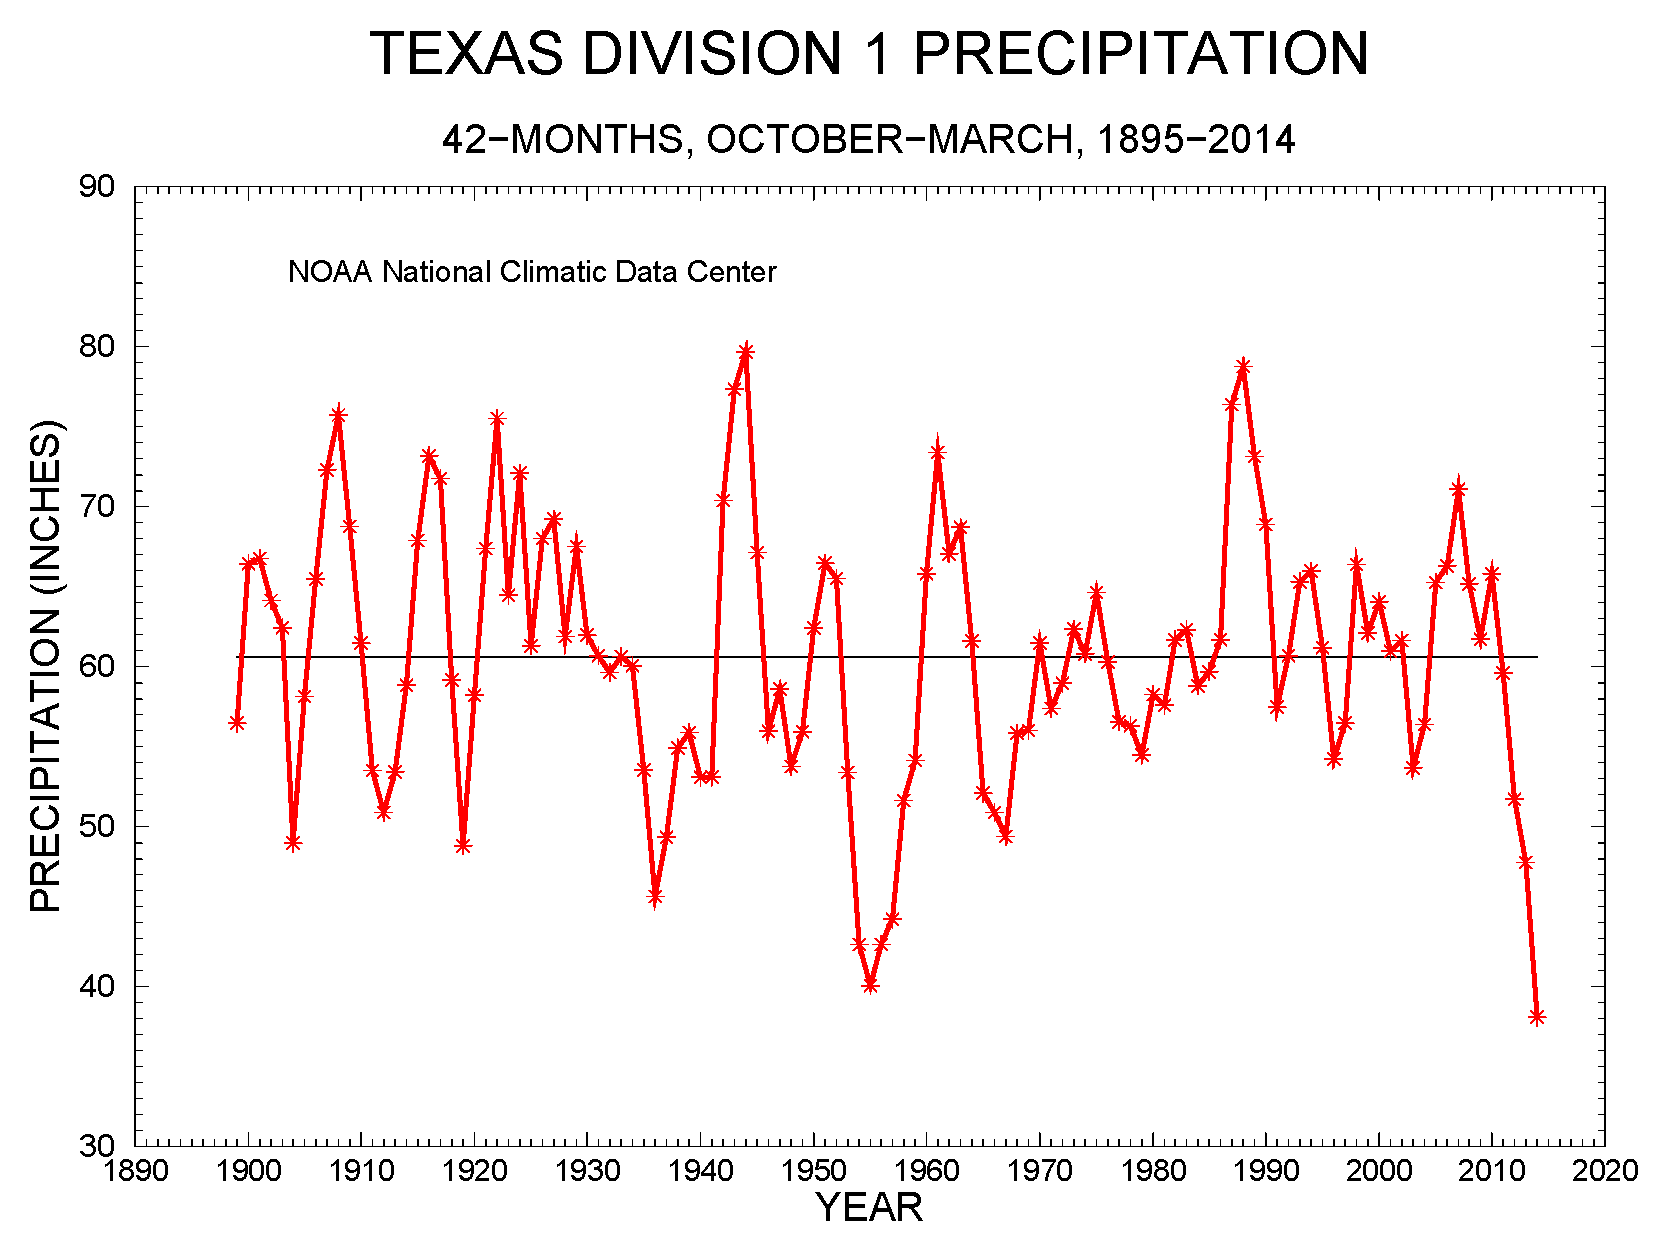 42-month precipitation, October-March, 1895-2014, for the Texas Panhandle